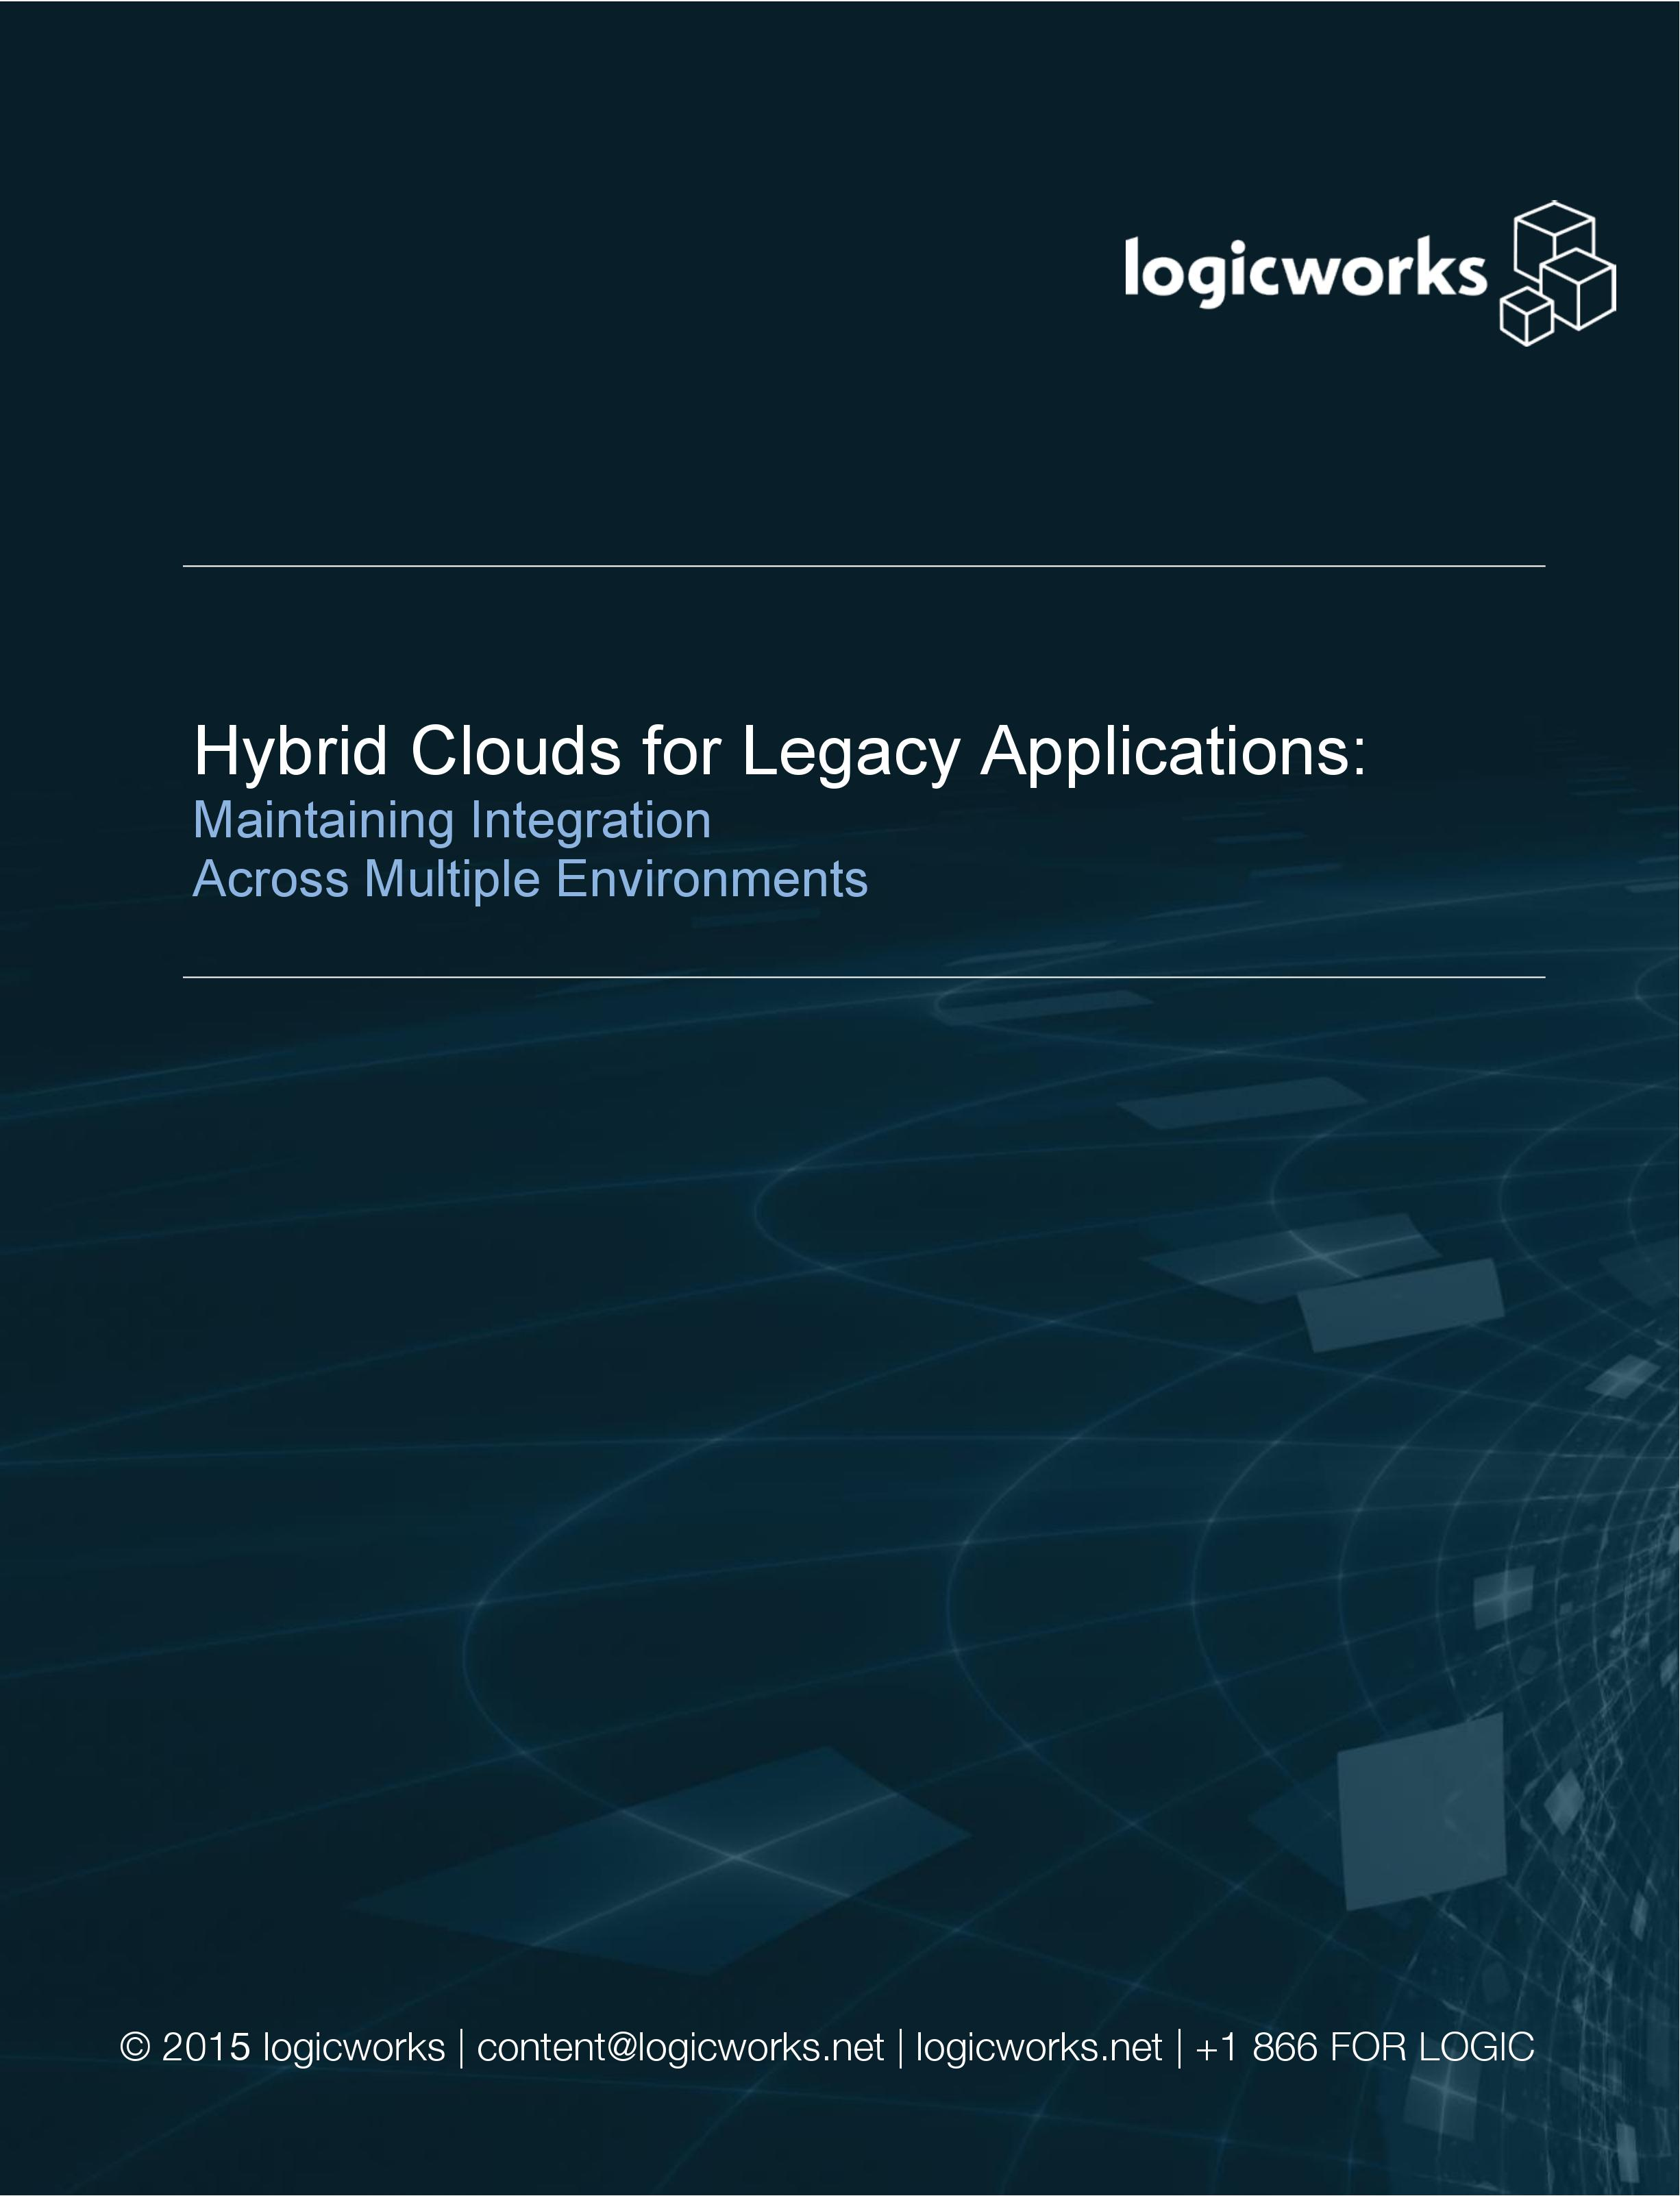 Hybrid Clouds for Legacy Applications.jpg